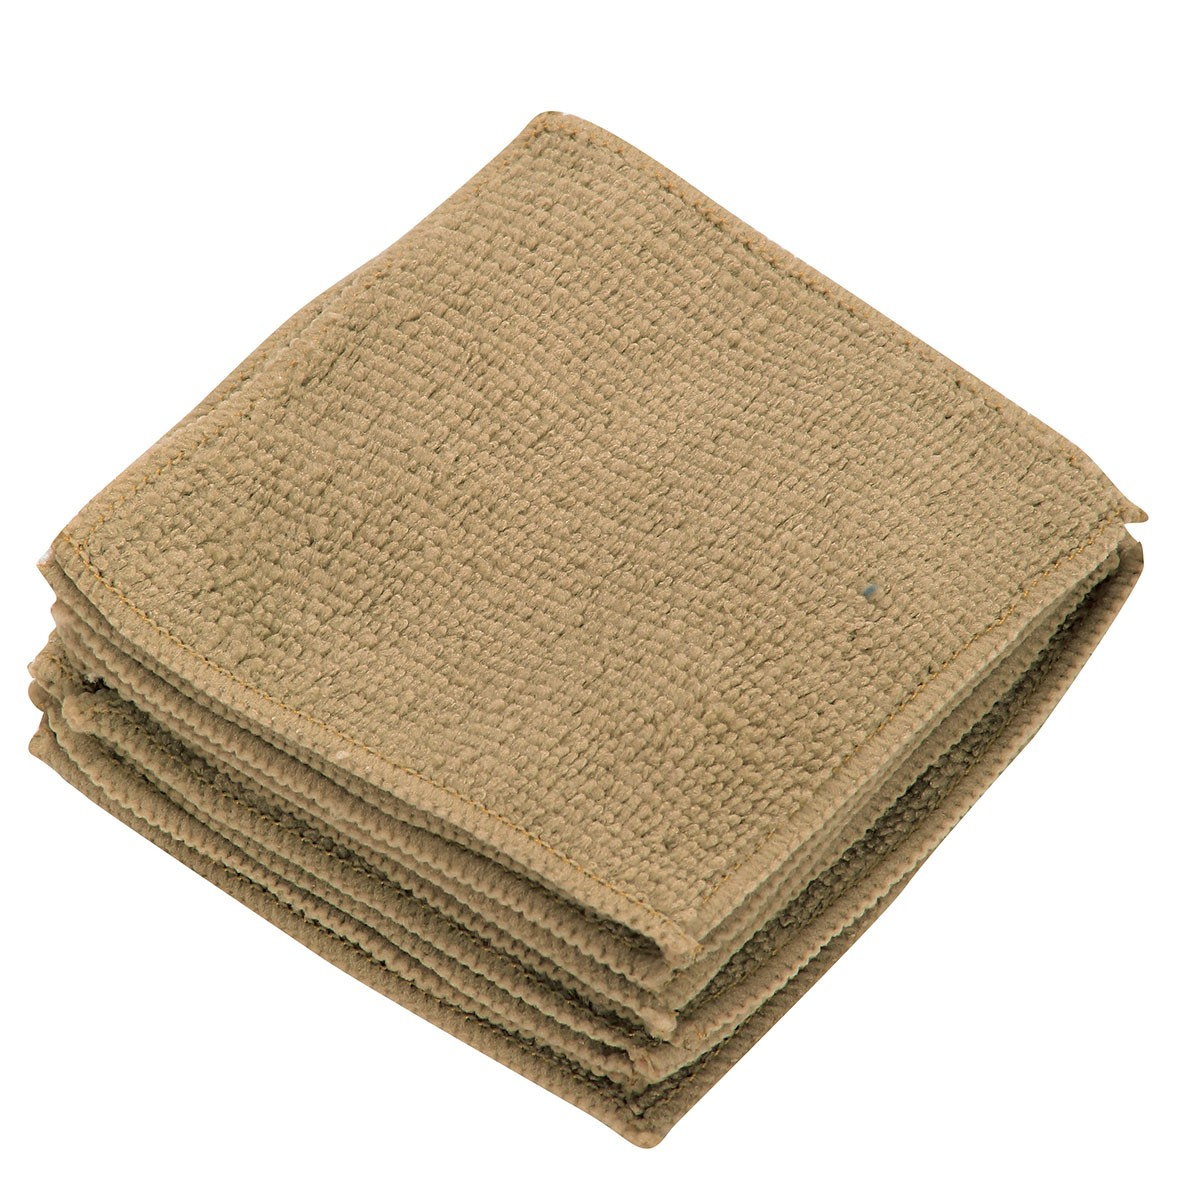 10PCS Original Microfiber Wash Cloths